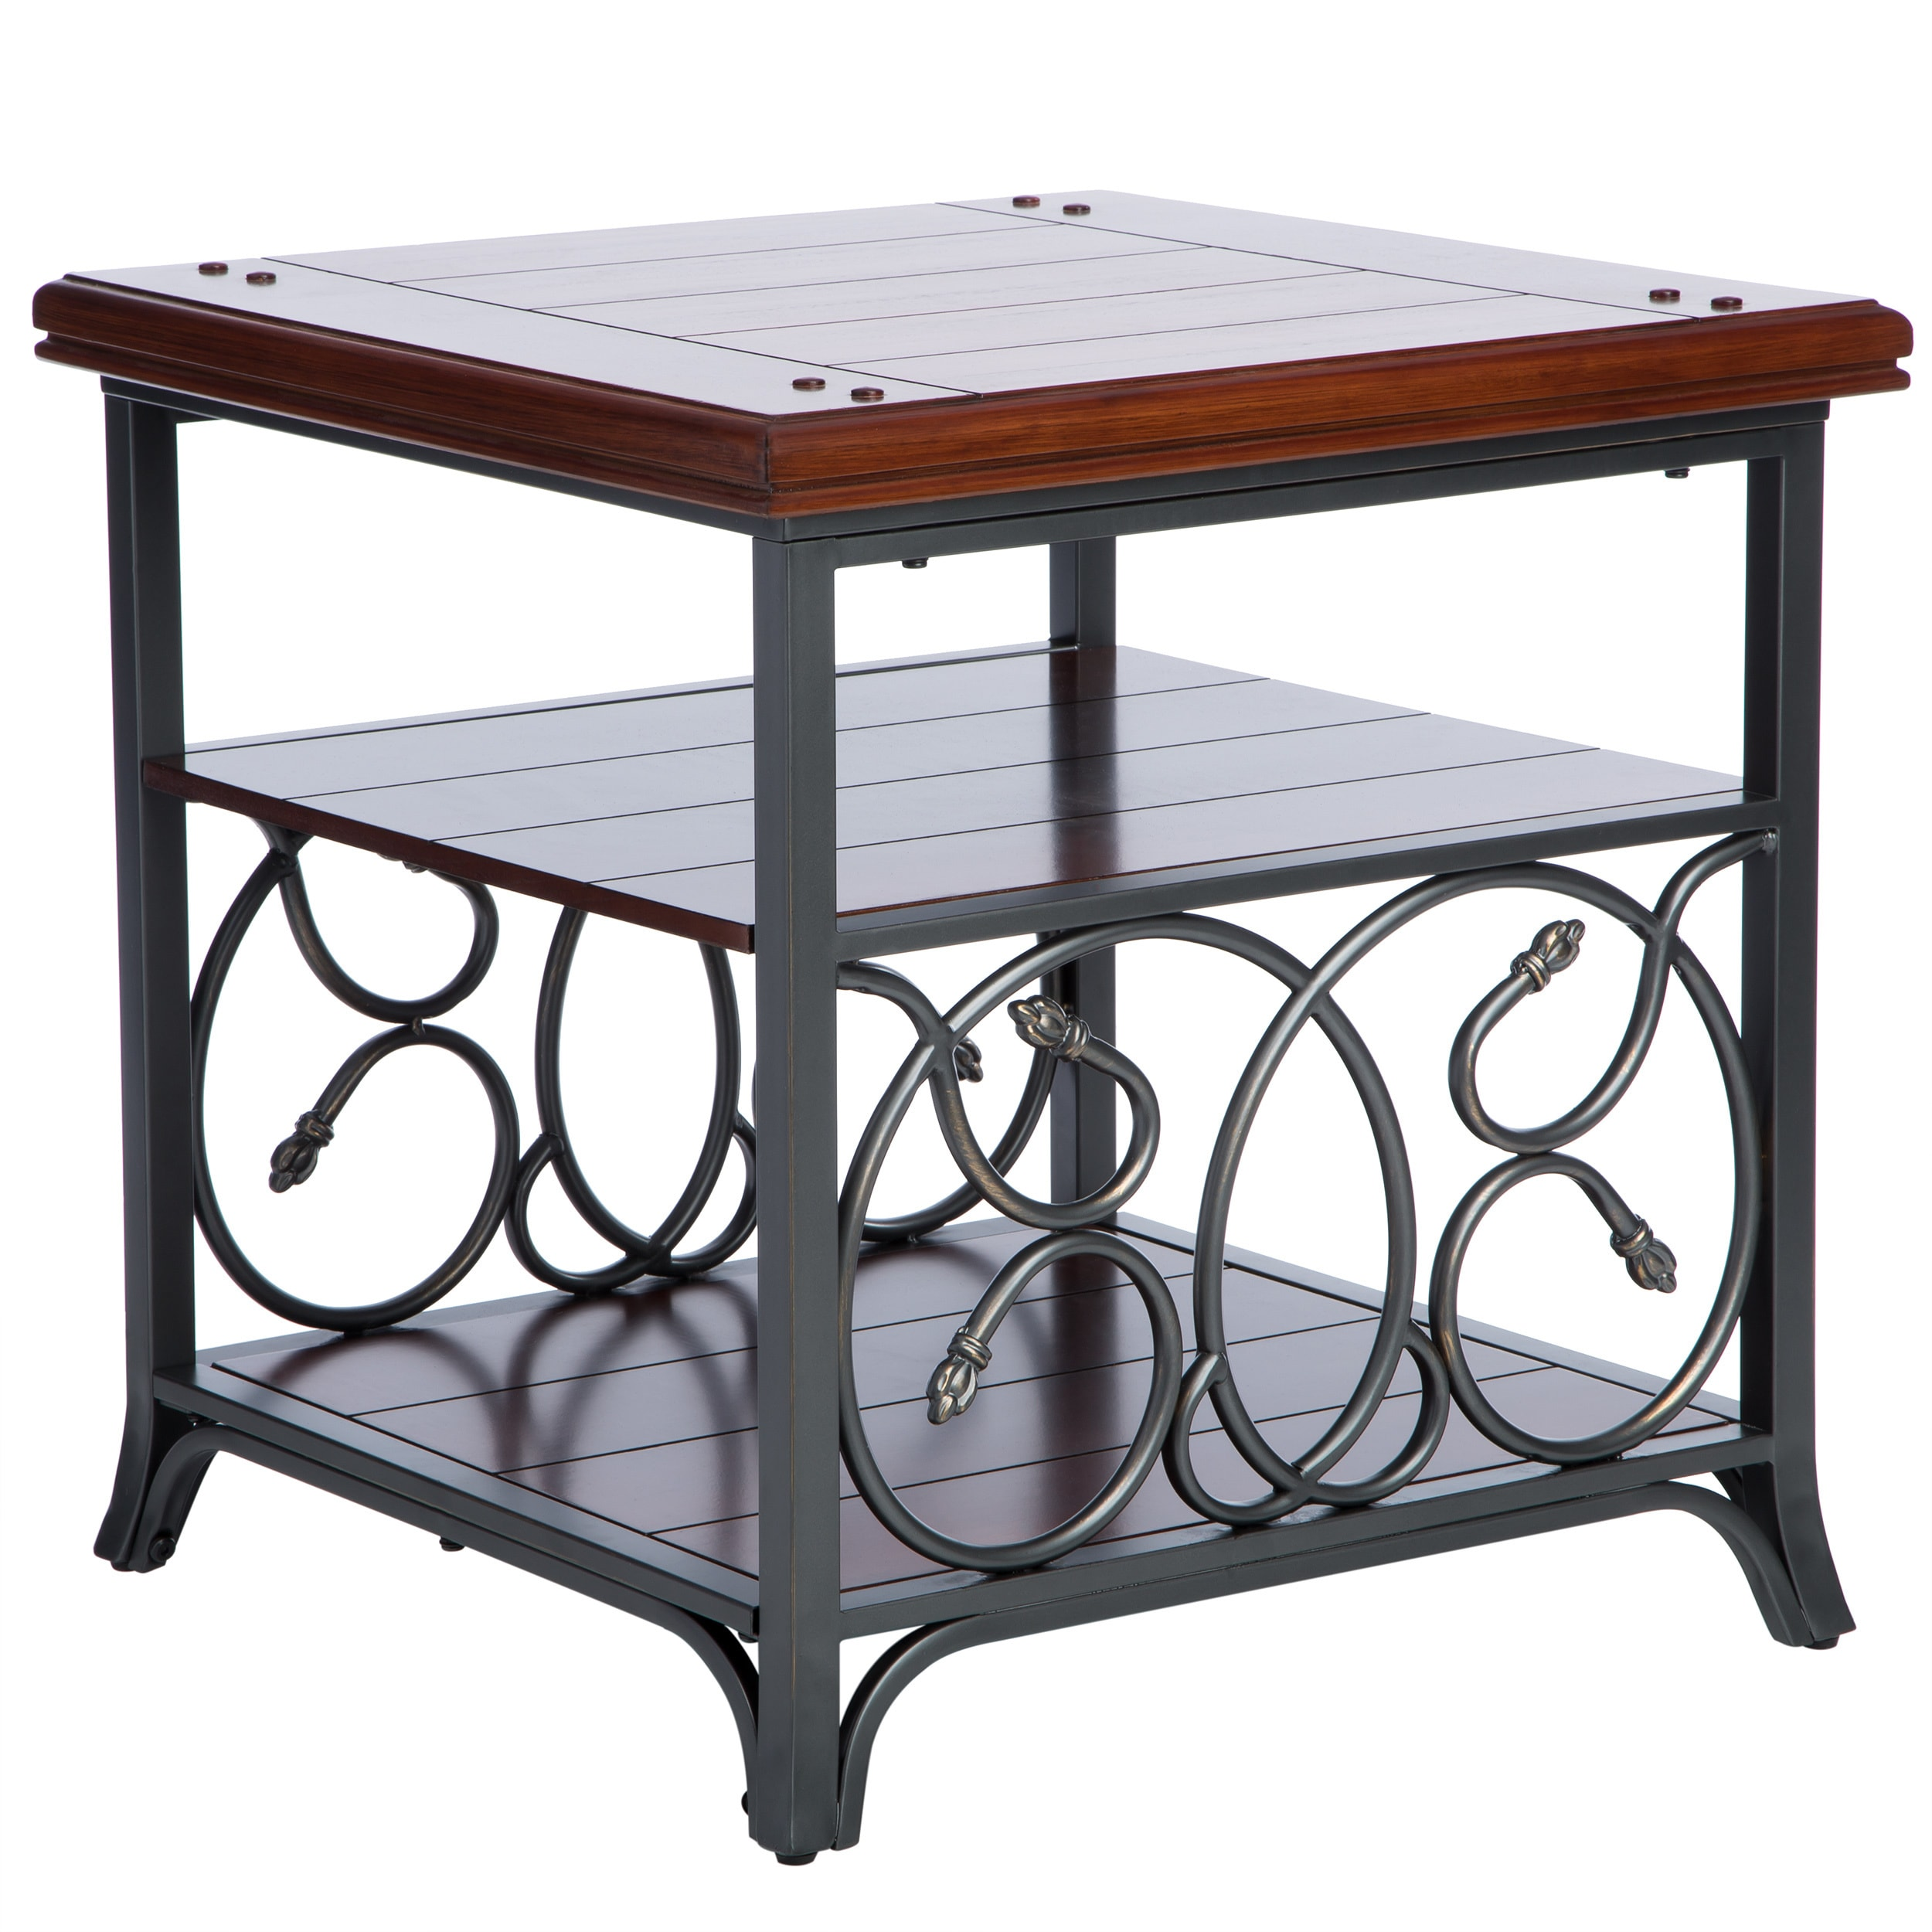 Gracewood Hollow Scrolled Metal and Wood End Table Free Shipping